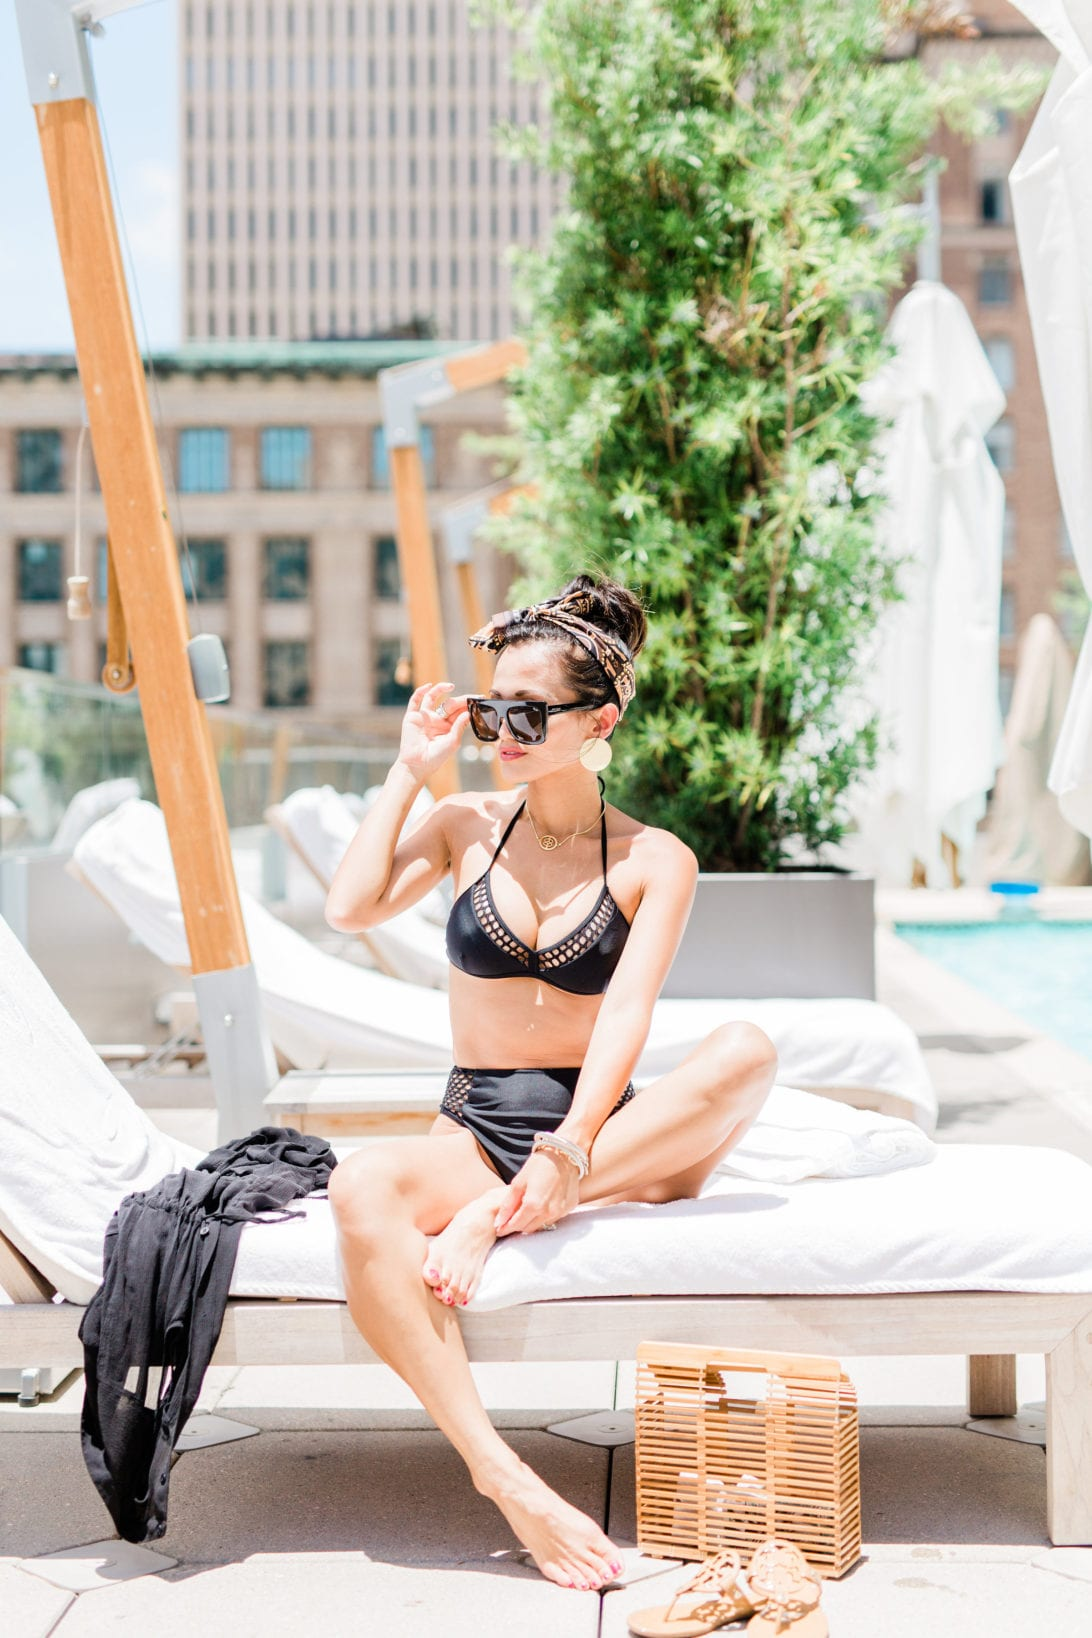 #dawnpdarnell, #summerfashion, #swimwear, #summerstyle, highwaistej bikini, black bikini, swim cover up, swimwear under $50, affordable swimwear, quay sunglass, bamboo bag, Louis Vuitton Word Tour Bandeau, LV bandeau, Tory Burch Miller sandals